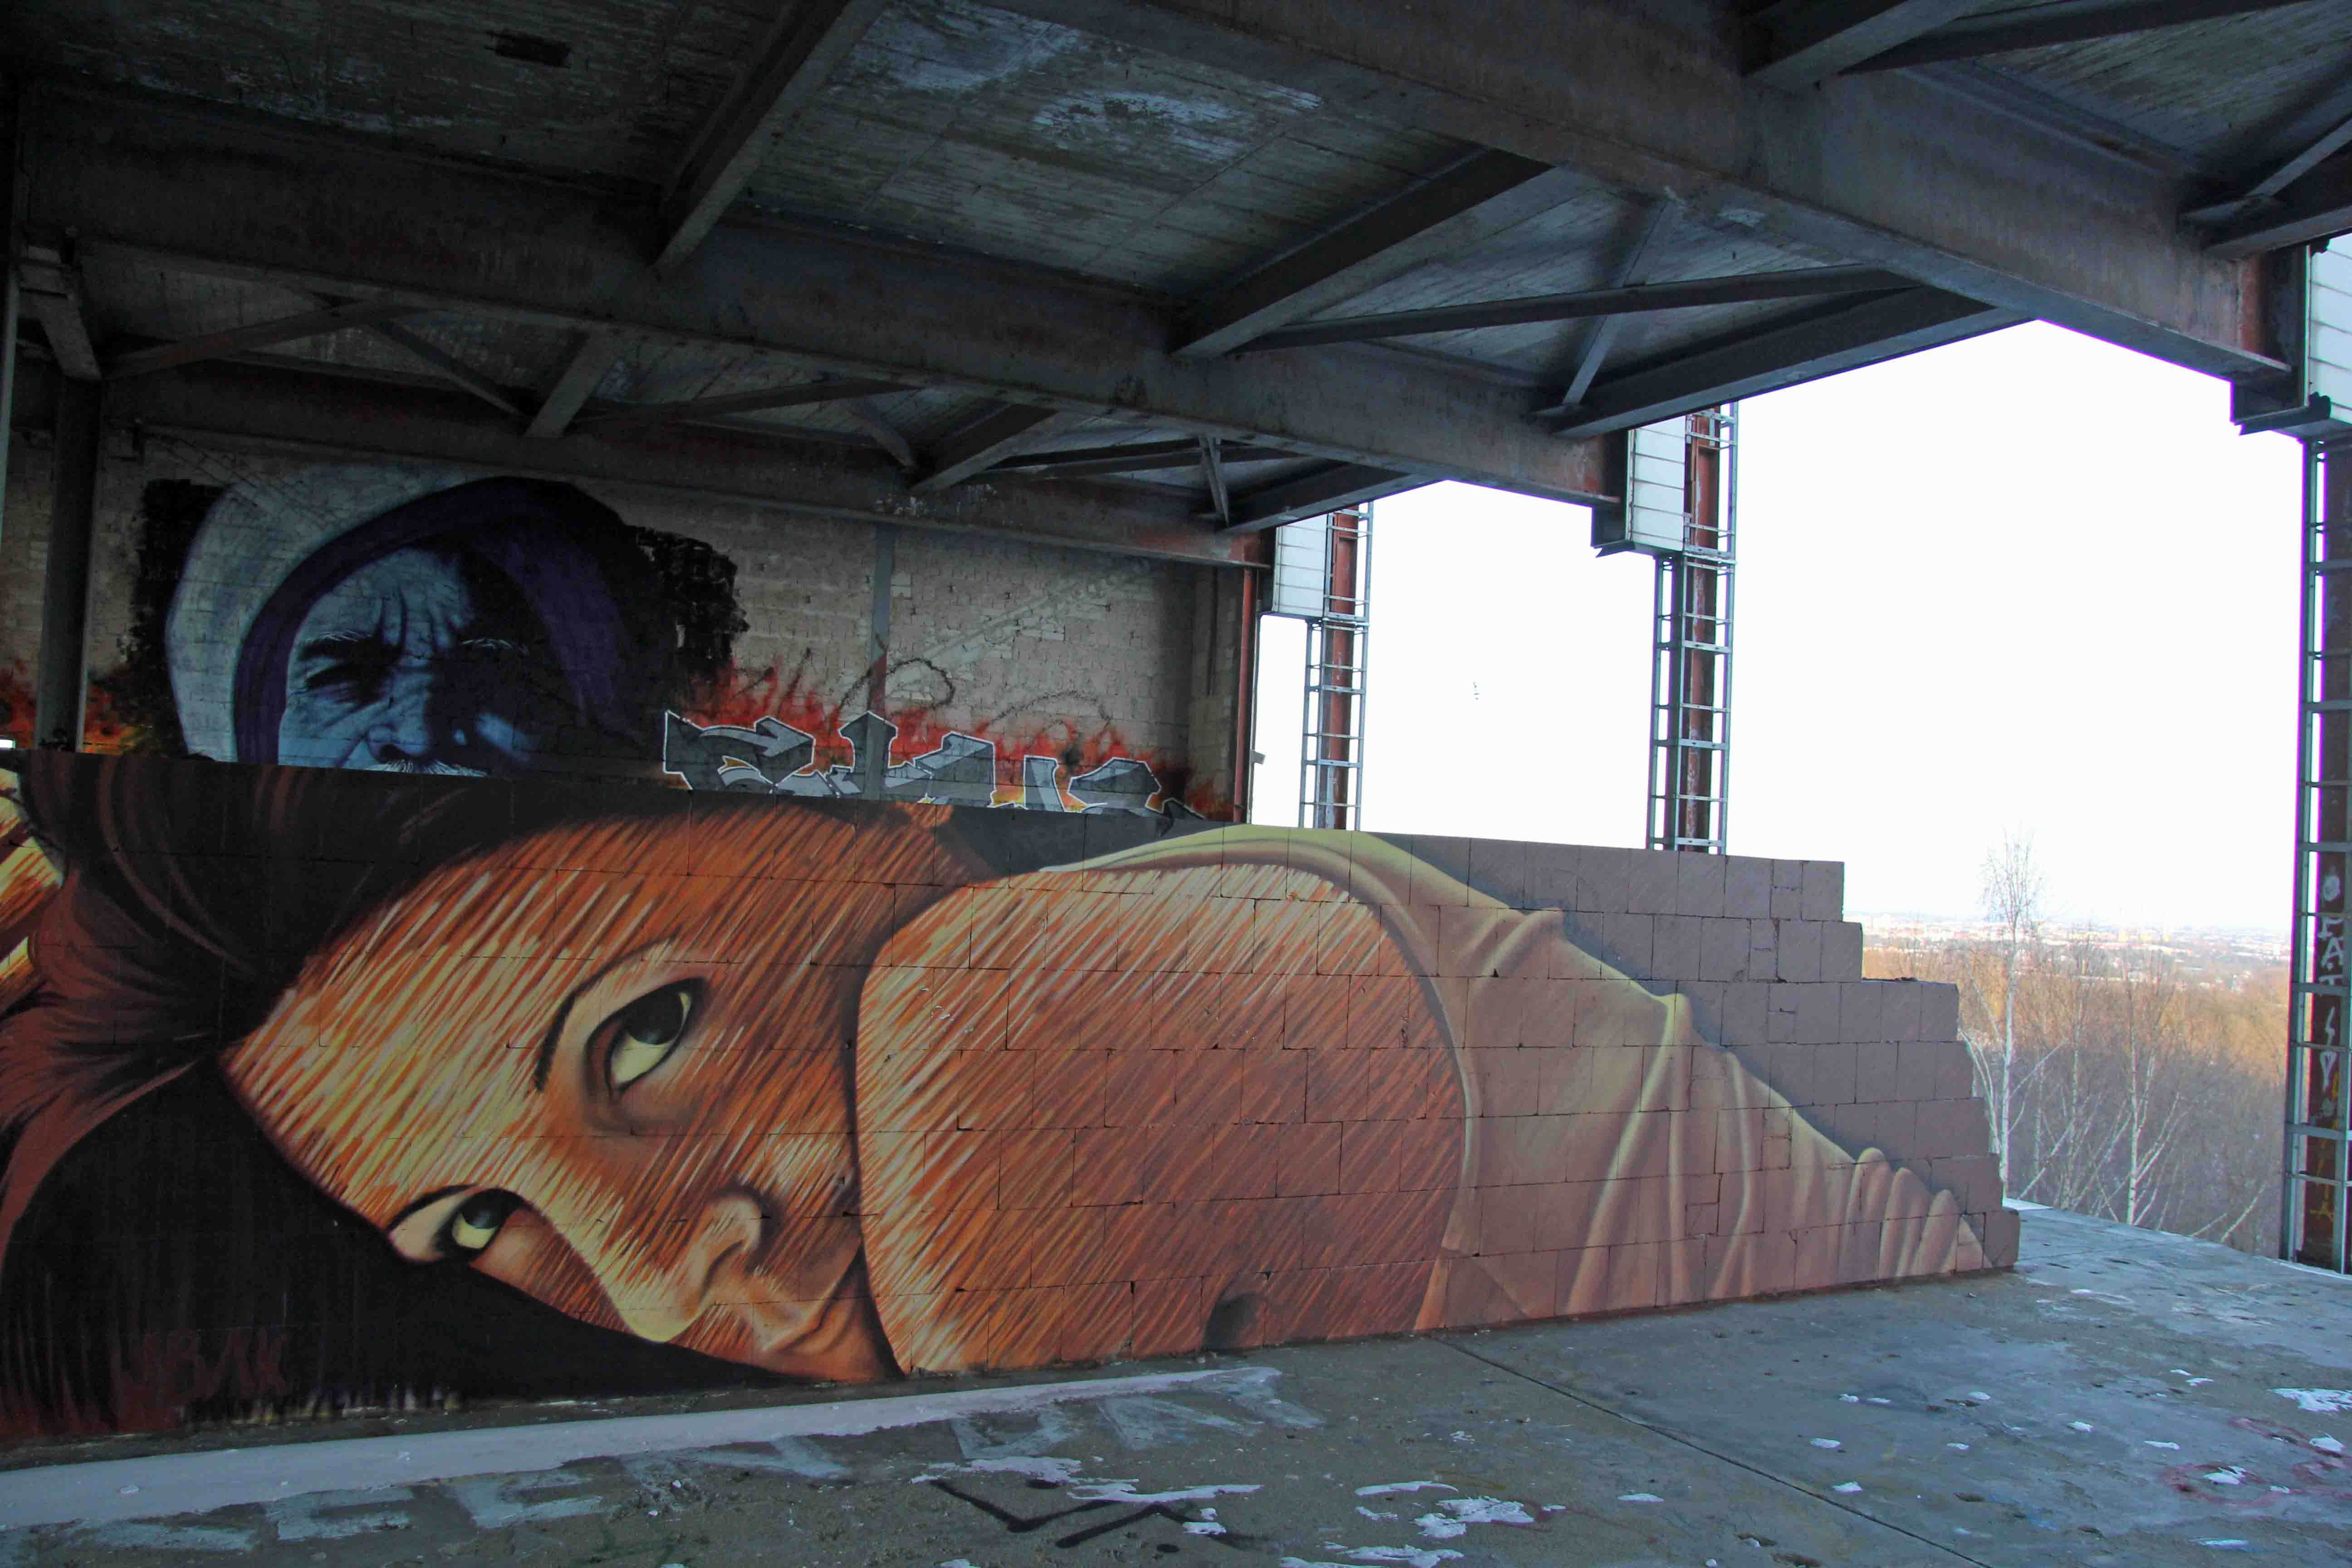 Morning - Street Art by JBAK (painted for Artbase 2012) at the former NSA Listening Station at Teufelsberg Berlin